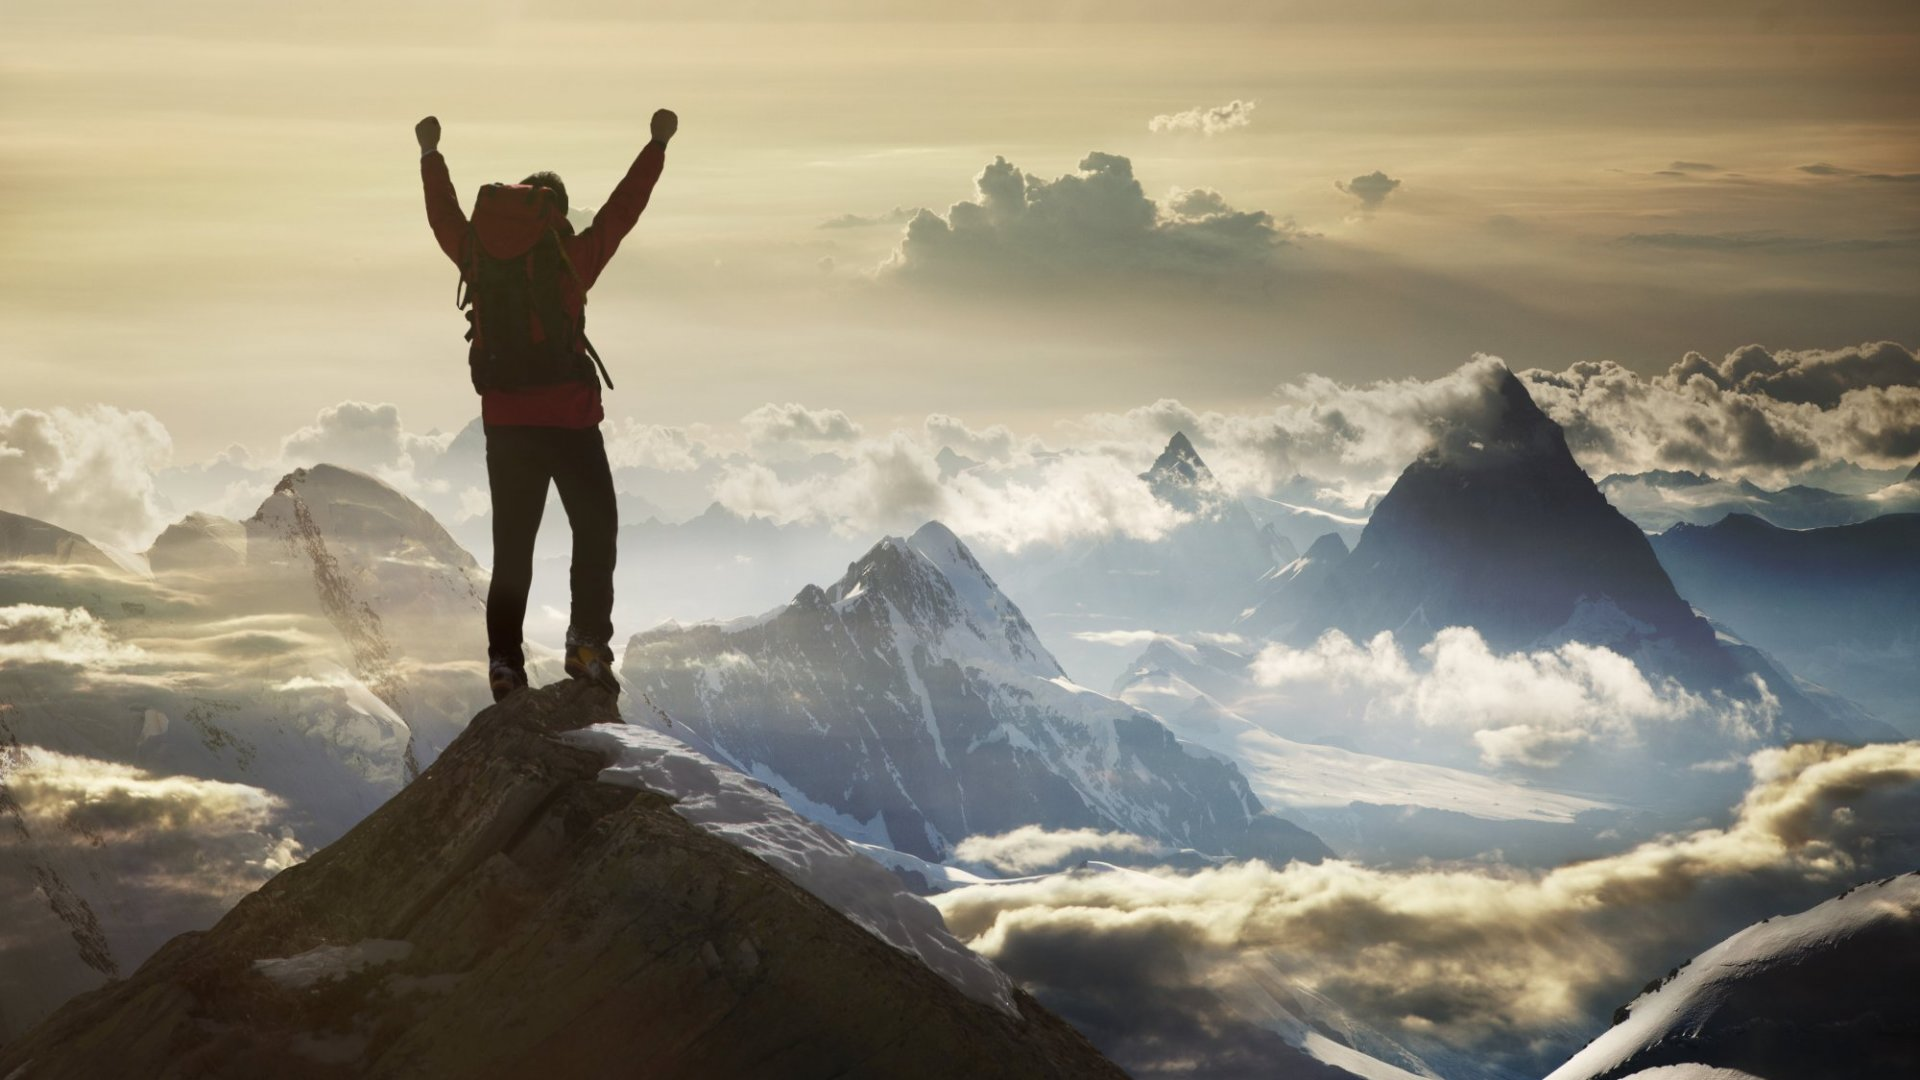 How to Reach the Goals You Obsess Over (Without Going Insane)